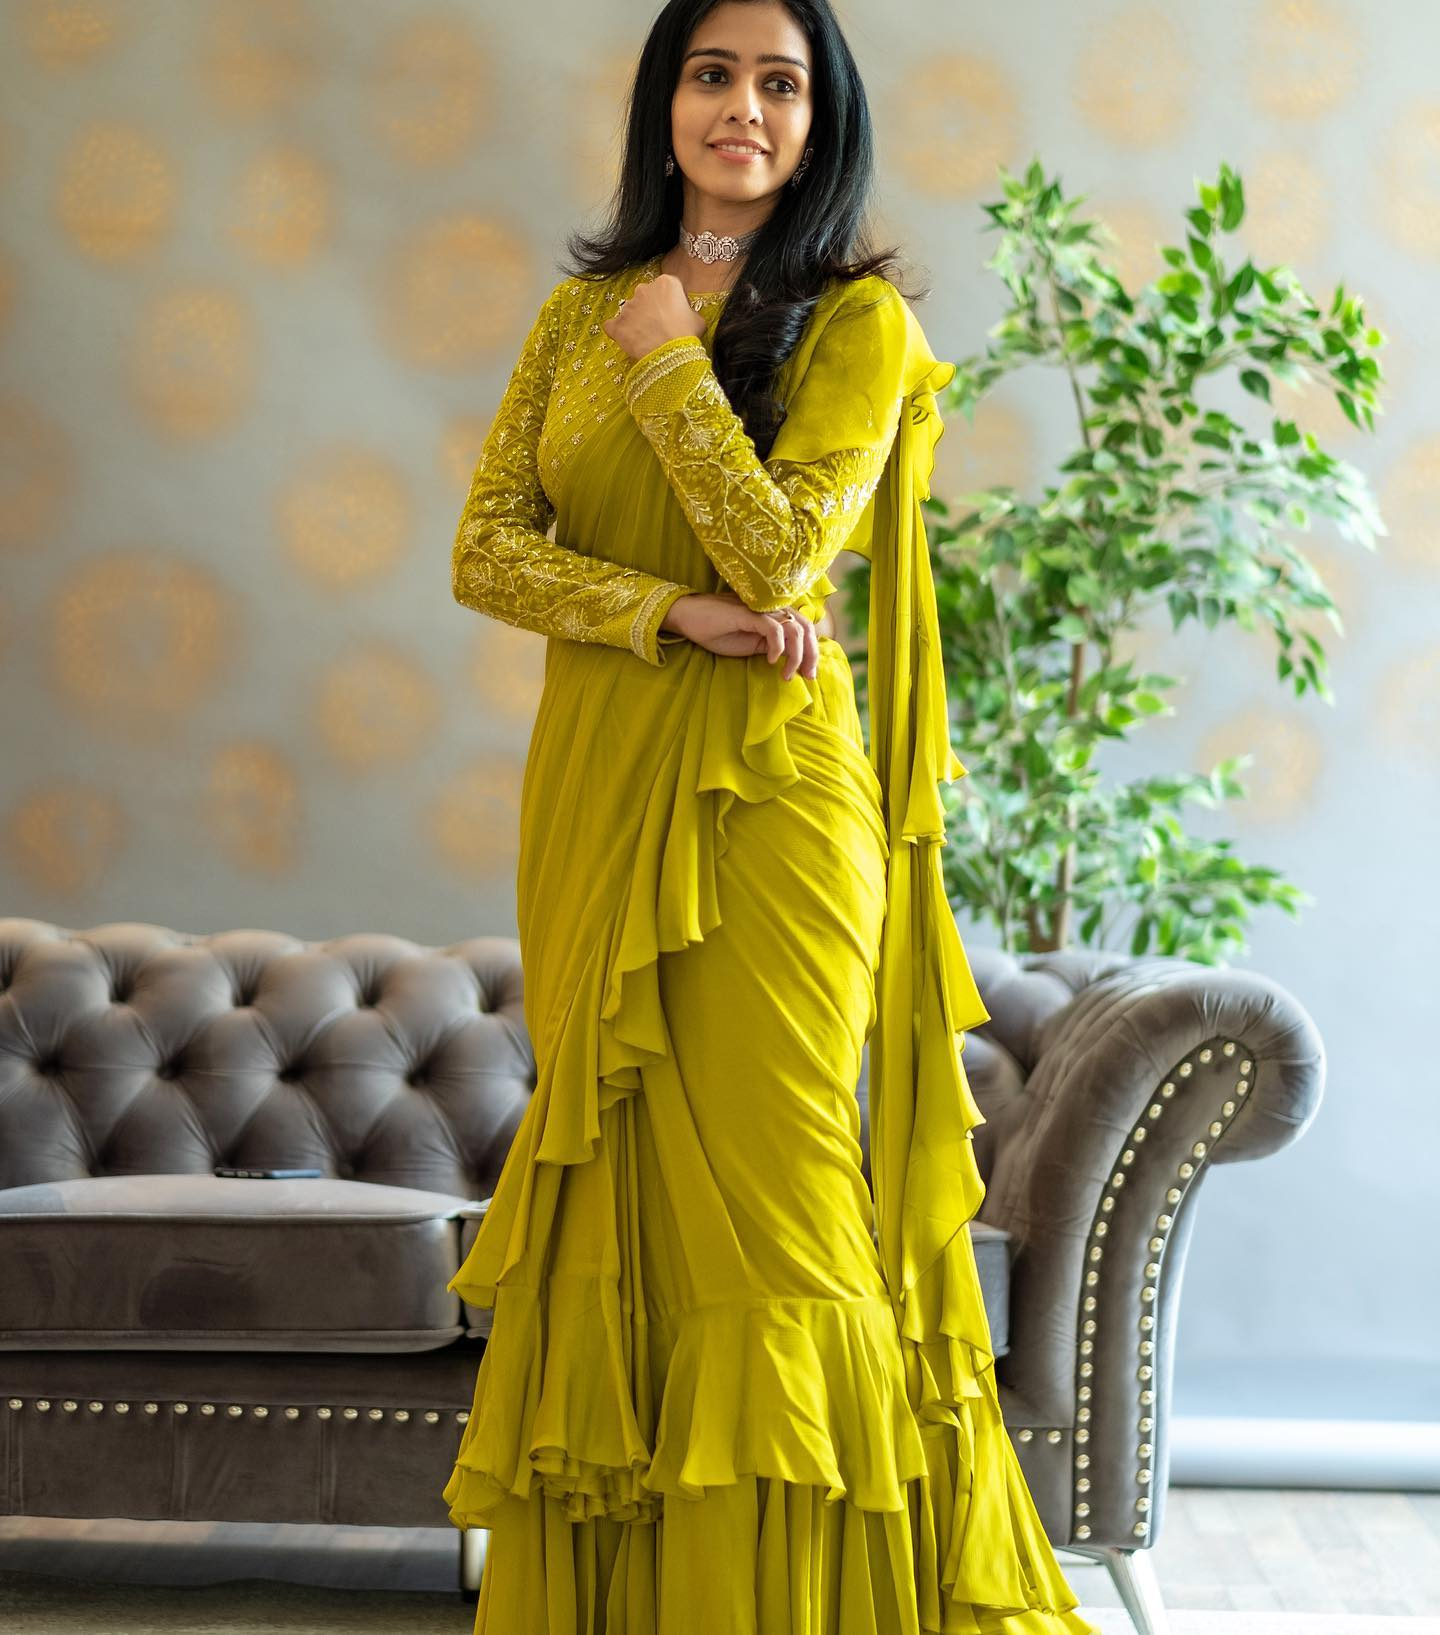 Beautiful radium green color ruffle saree and full sleeve blouse with hand embroidery work.   2021-05-27